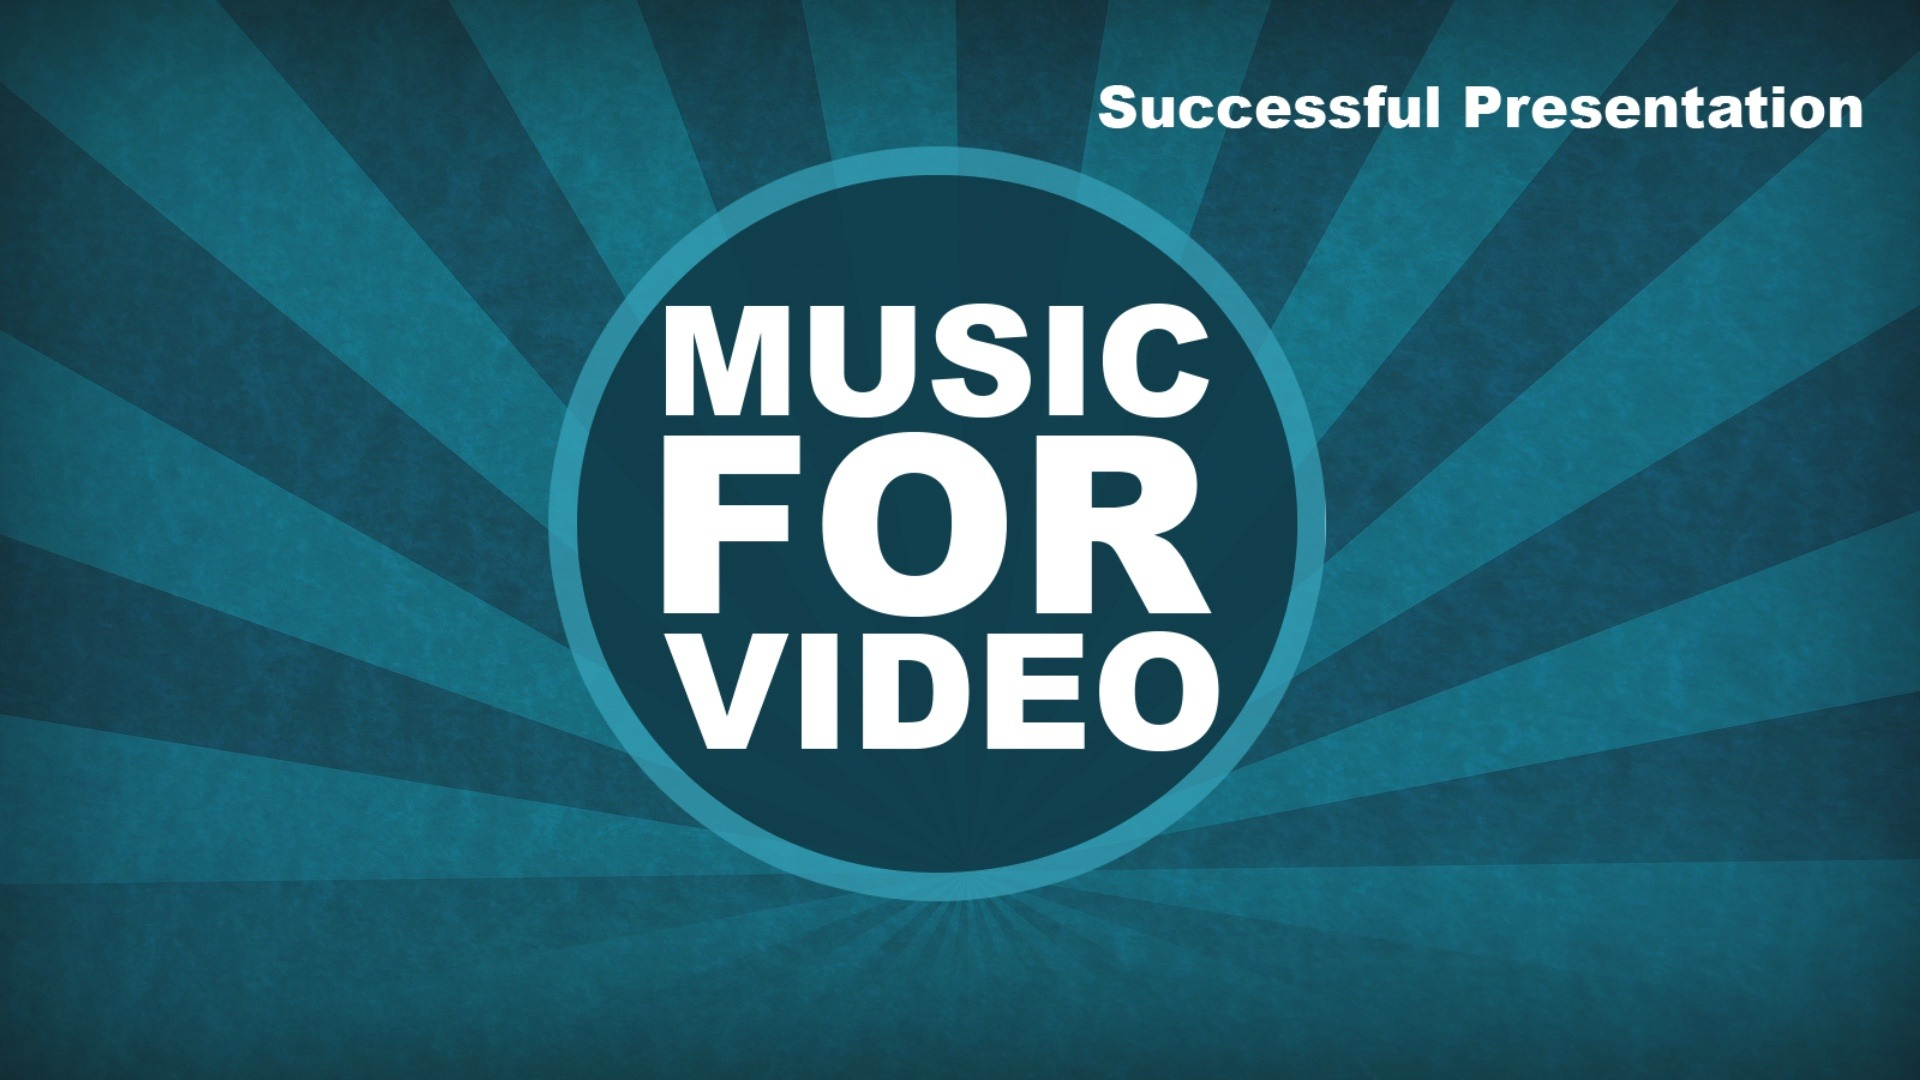 successful presentation audiozond royalty free music